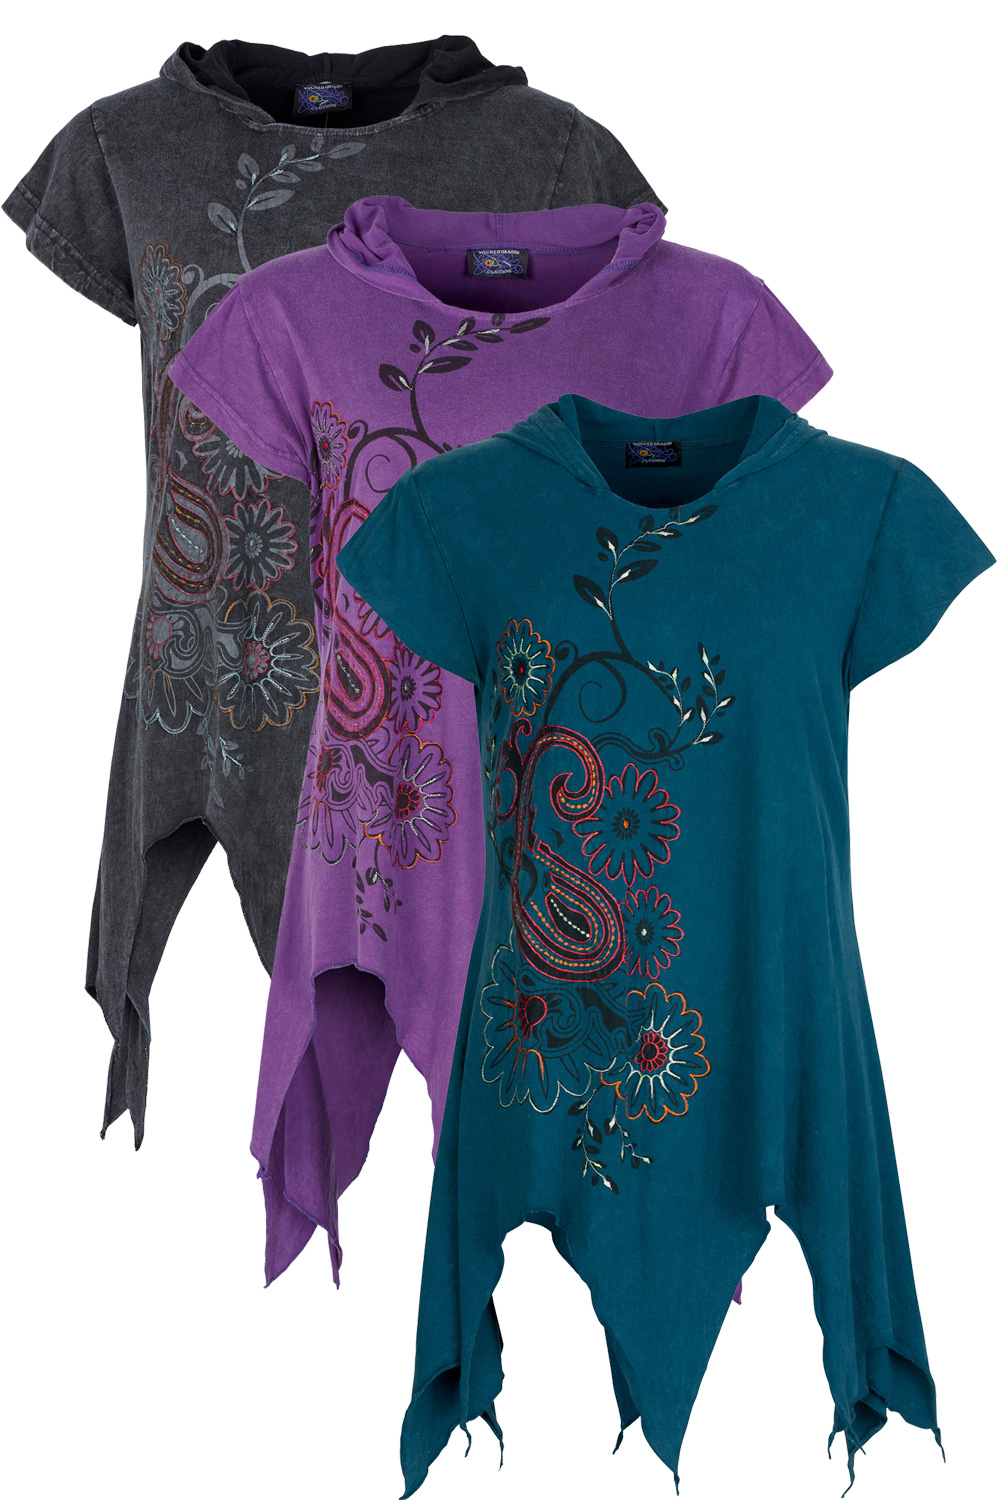 Short sleeve hooded pixie top - M/L only